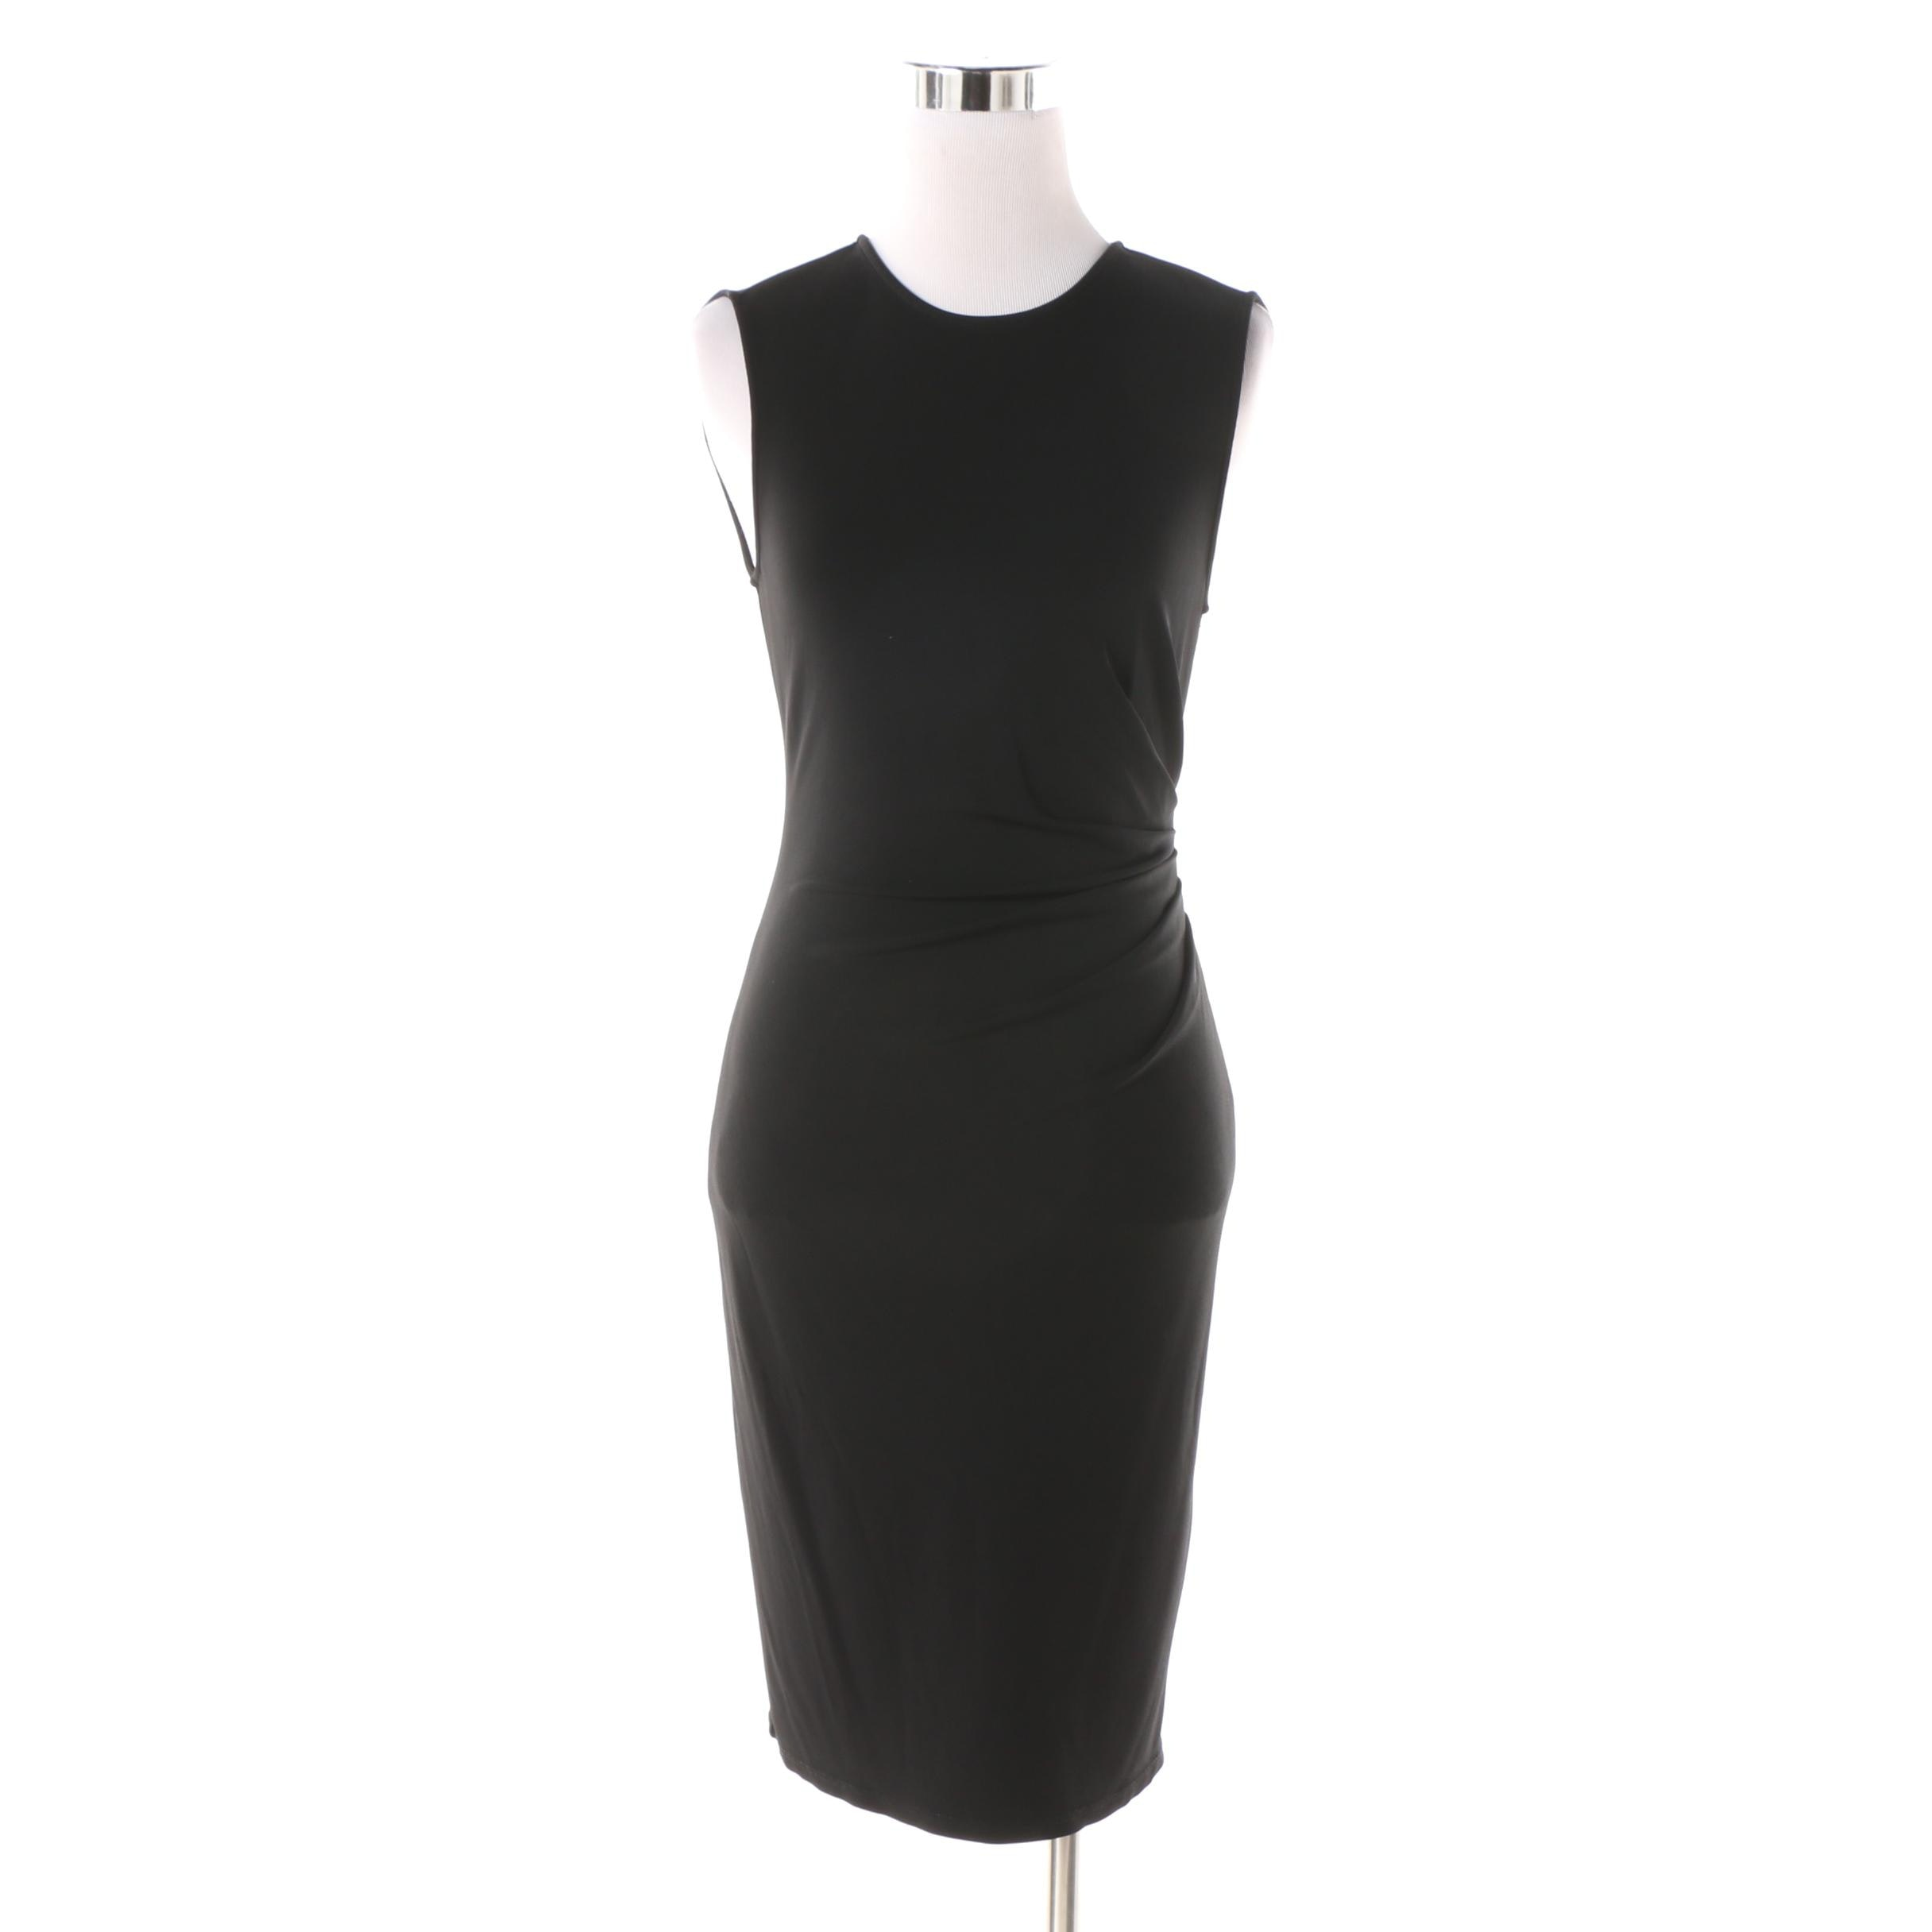 Theory Black Sleeveless Bodycon Dress